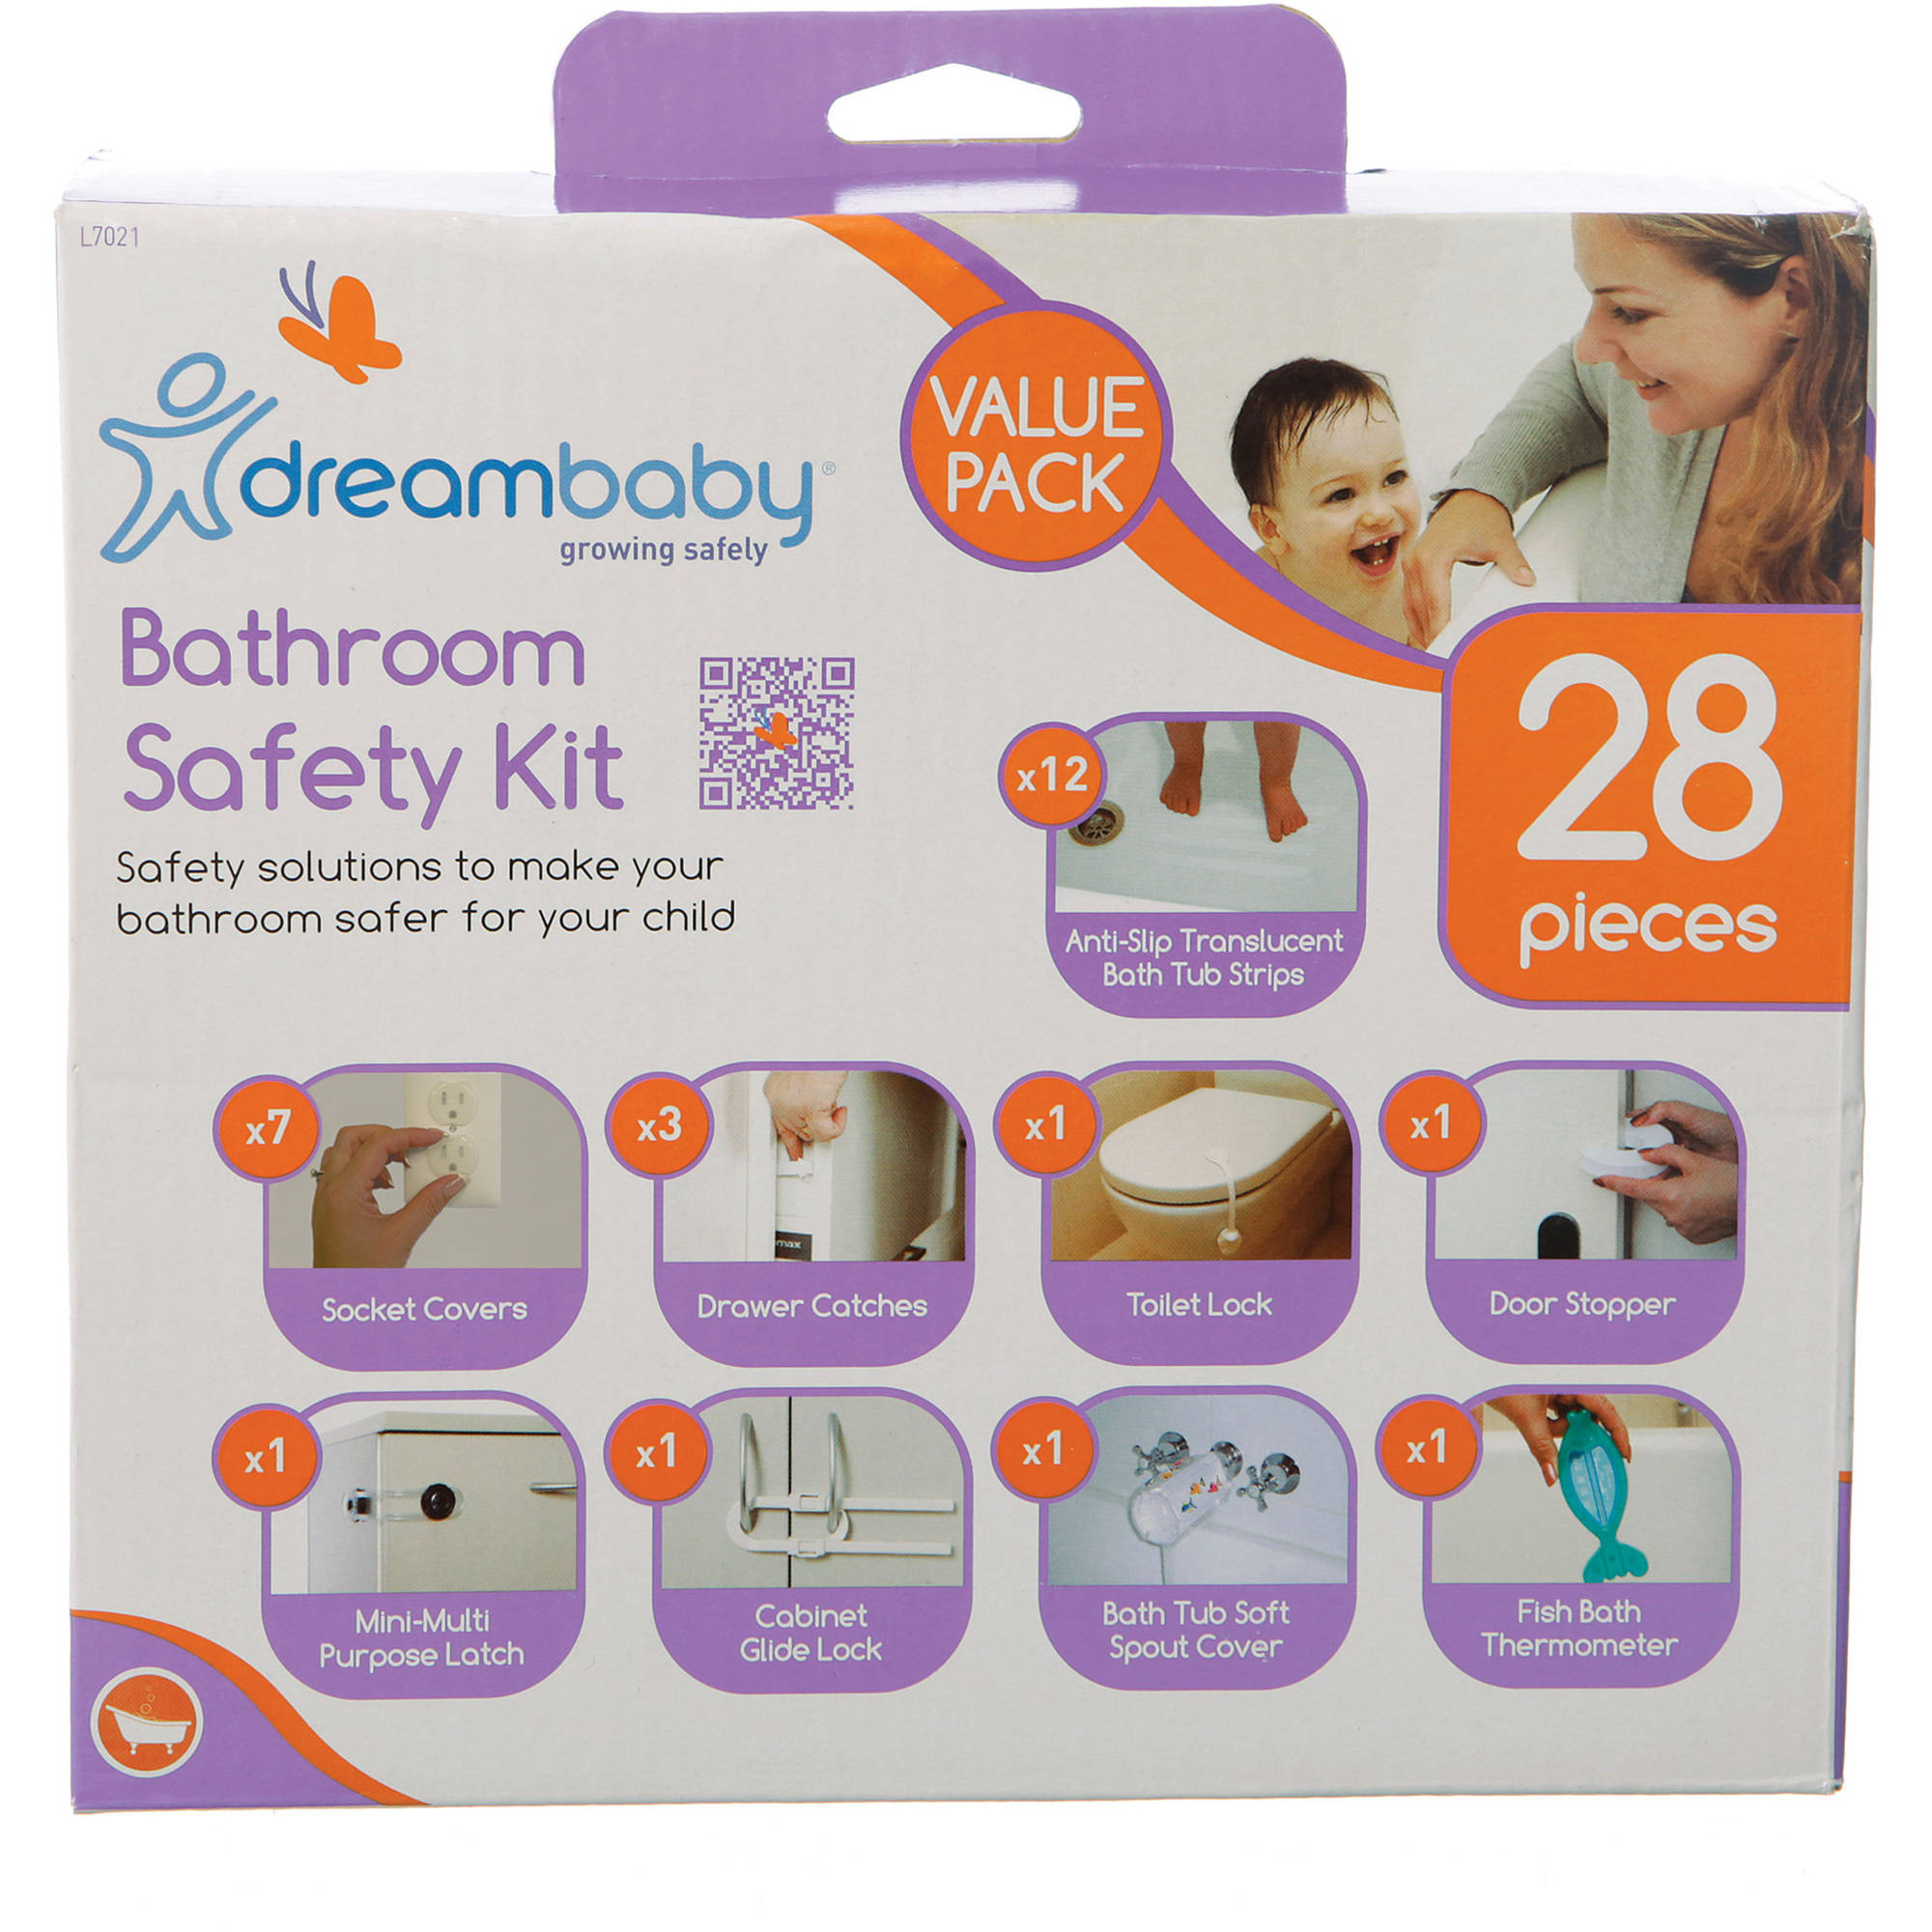 Dreambaby Bathroom Safety Value Pack, 28 Pieces